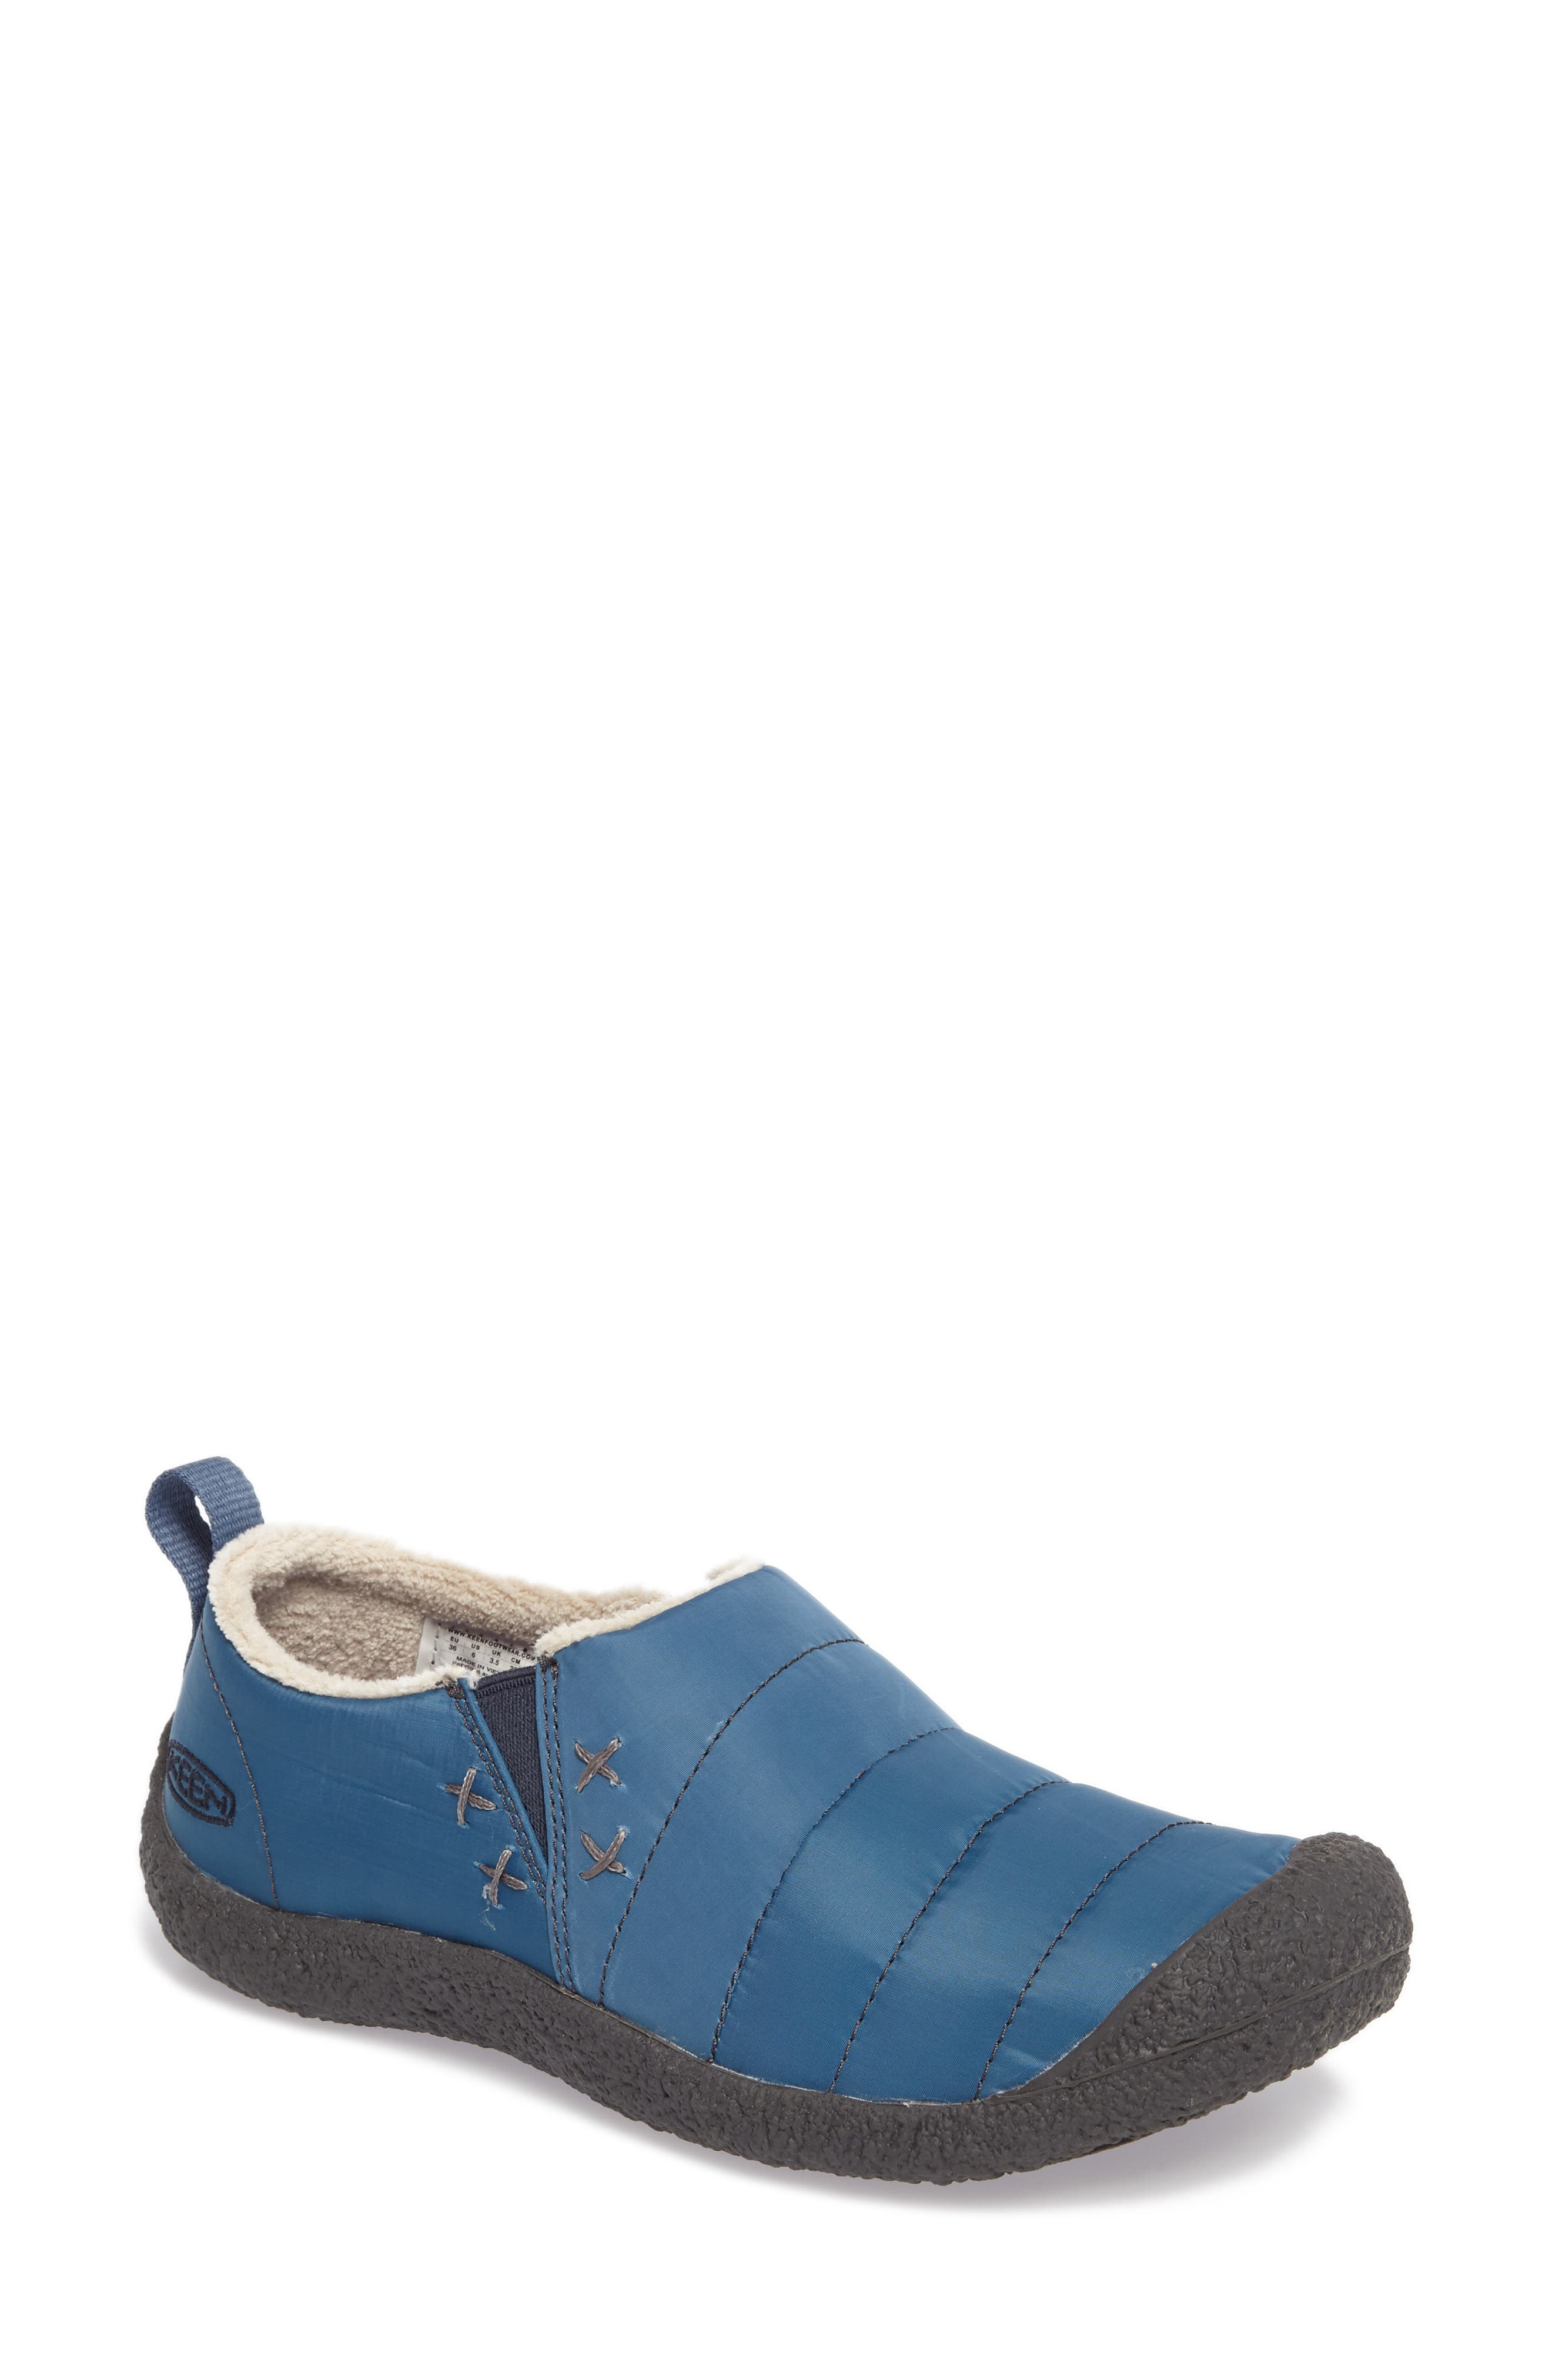 Howser II Water-Resistant Round Toe Clog,                             Main thumbnail 1, color,                             Captains Blue Nylon